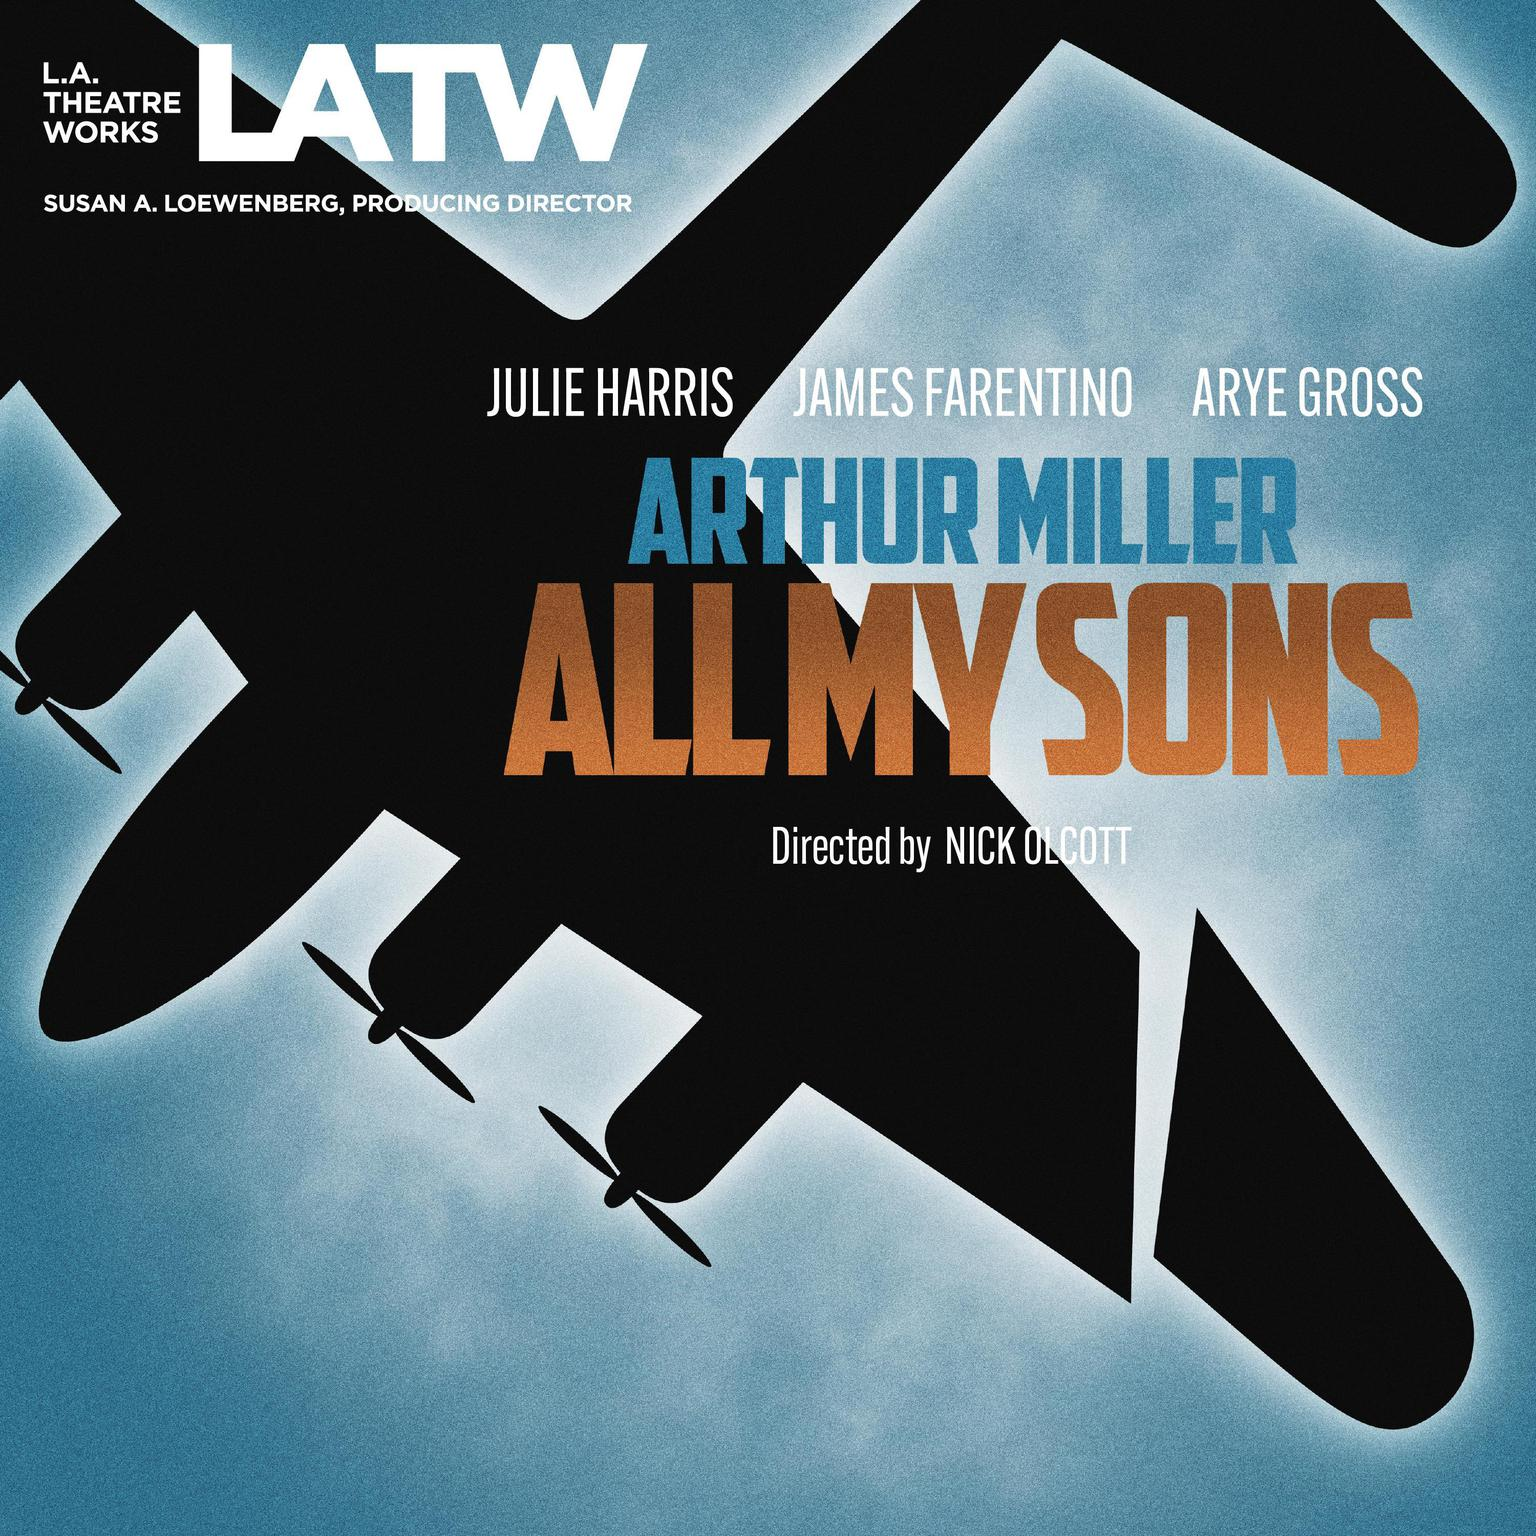 a review of arthur millers all my sons Review: in arthur miller's all my sons, the too-high cost of doing business by david fox on october 16, 2018 • ( leave a comment ) paul kuhn, trice baldwin, nastassja whitman, and chase byrd in all my sons at curio theatre.